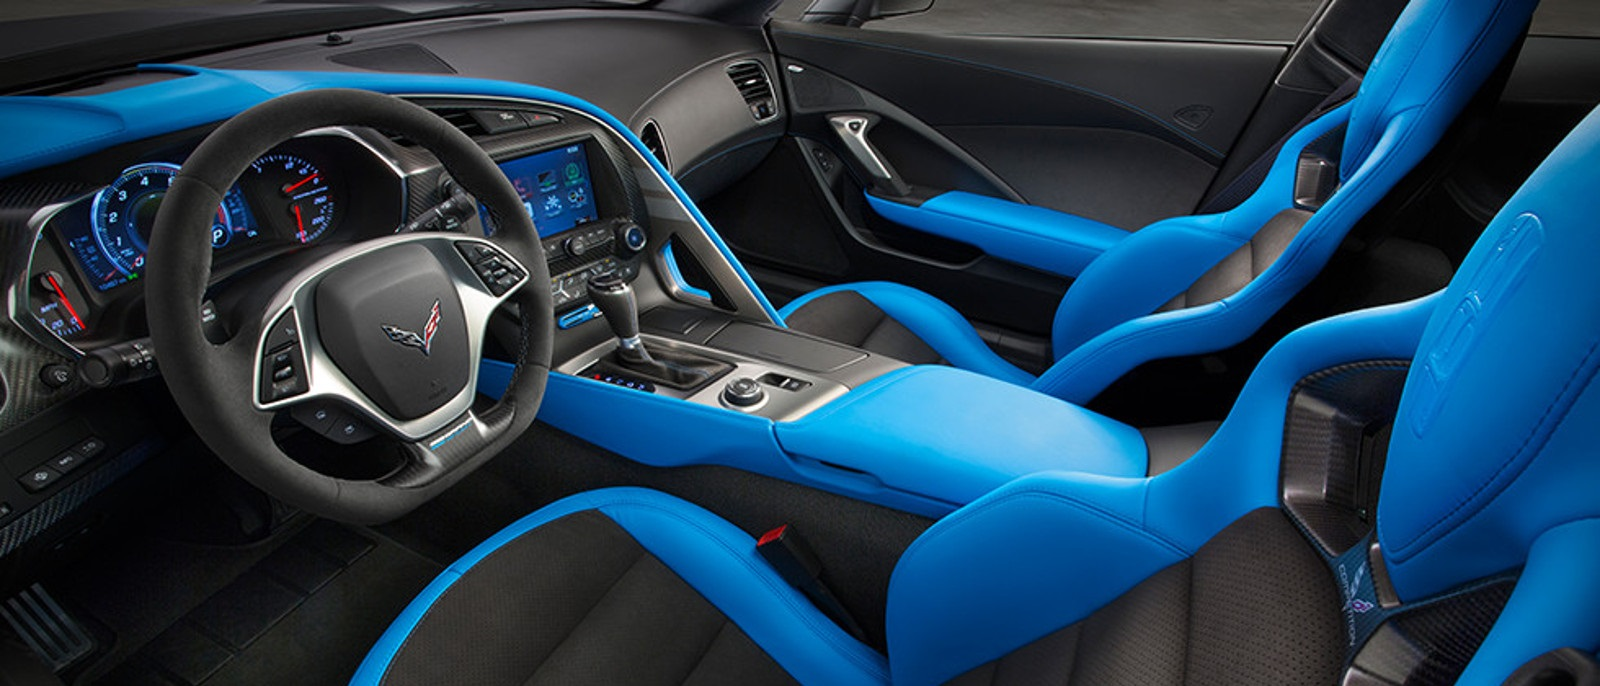 2017-chevrolet-corvette-grand-sport-interior-seats1